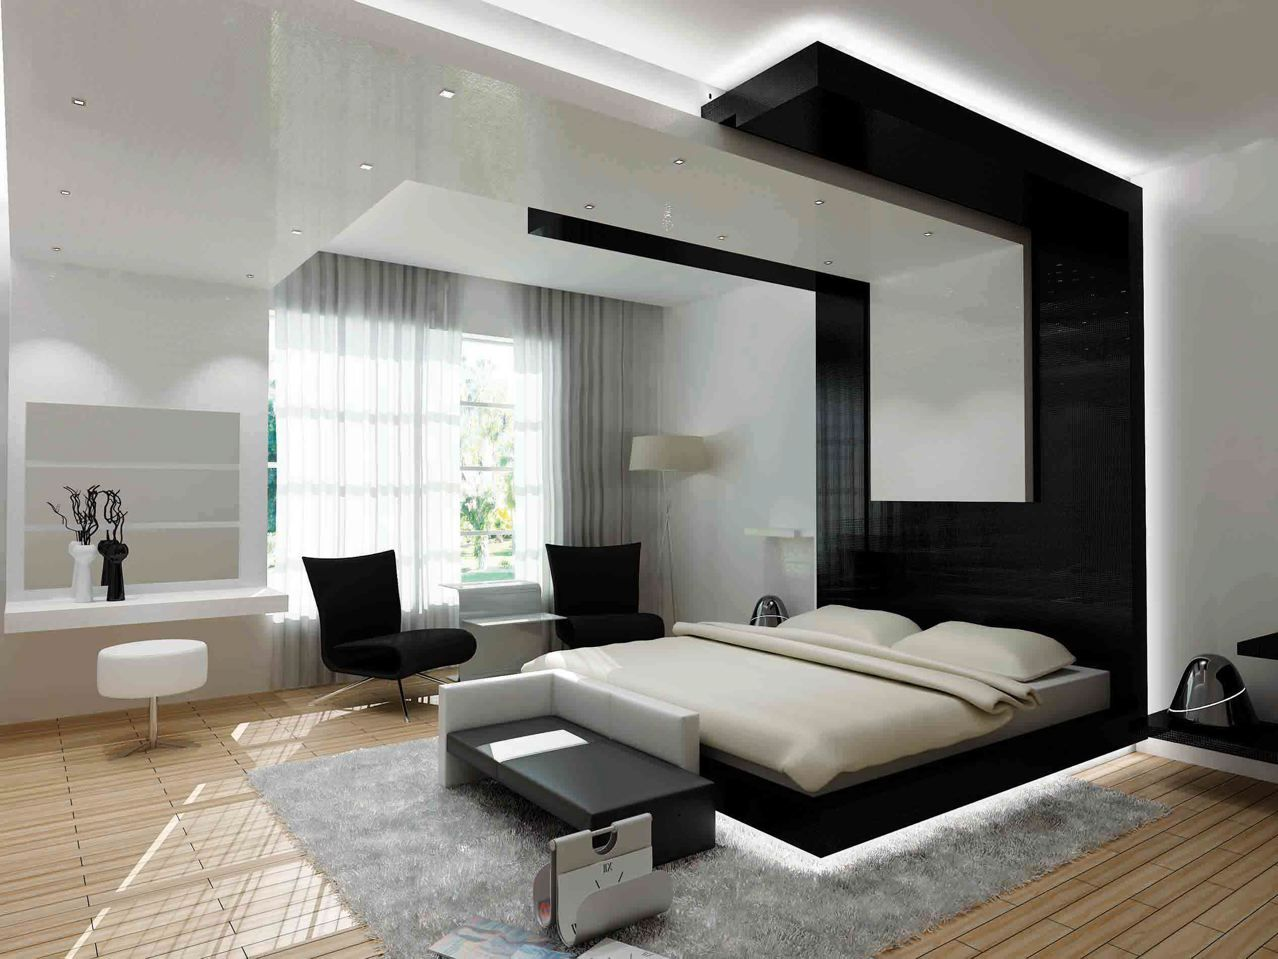 25 Best Modern Bedroom Designs  Bedroom ideas Bedroom designs